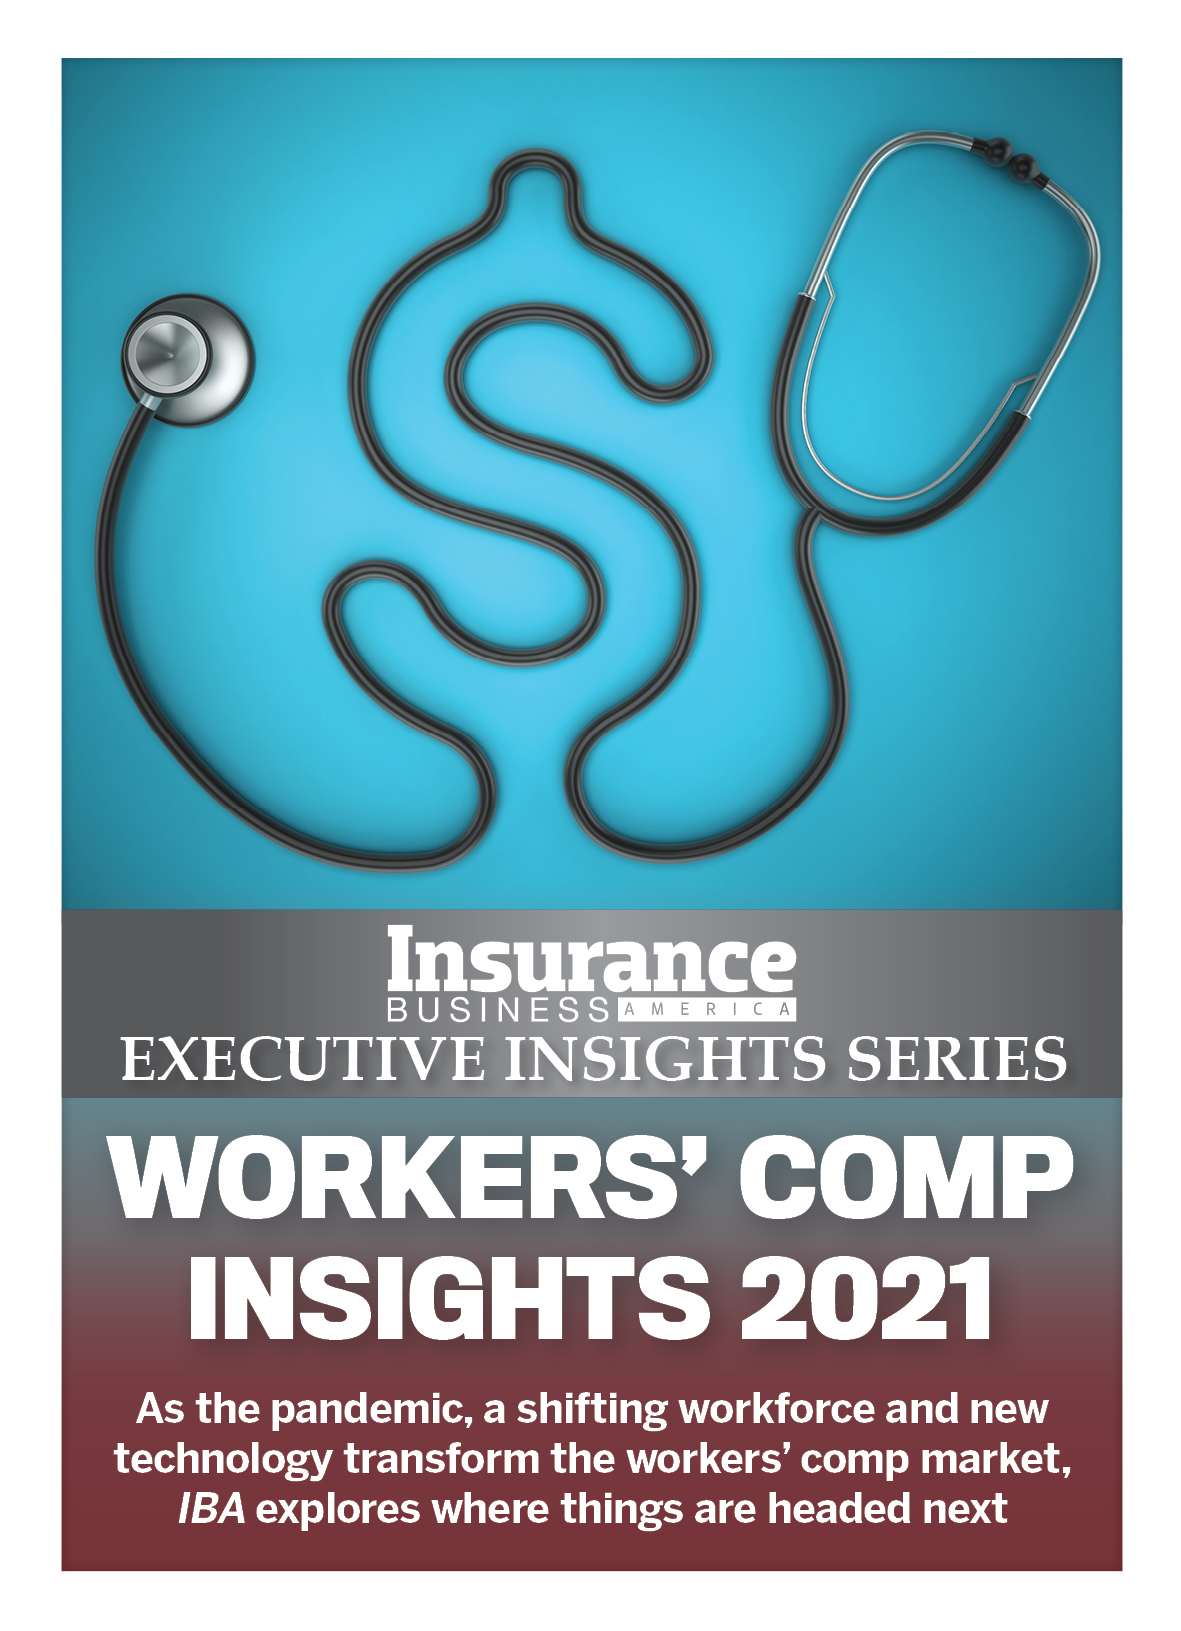 Insurance Business America 9.06 - Executive Insights Series Workers' Comp Insights 2021